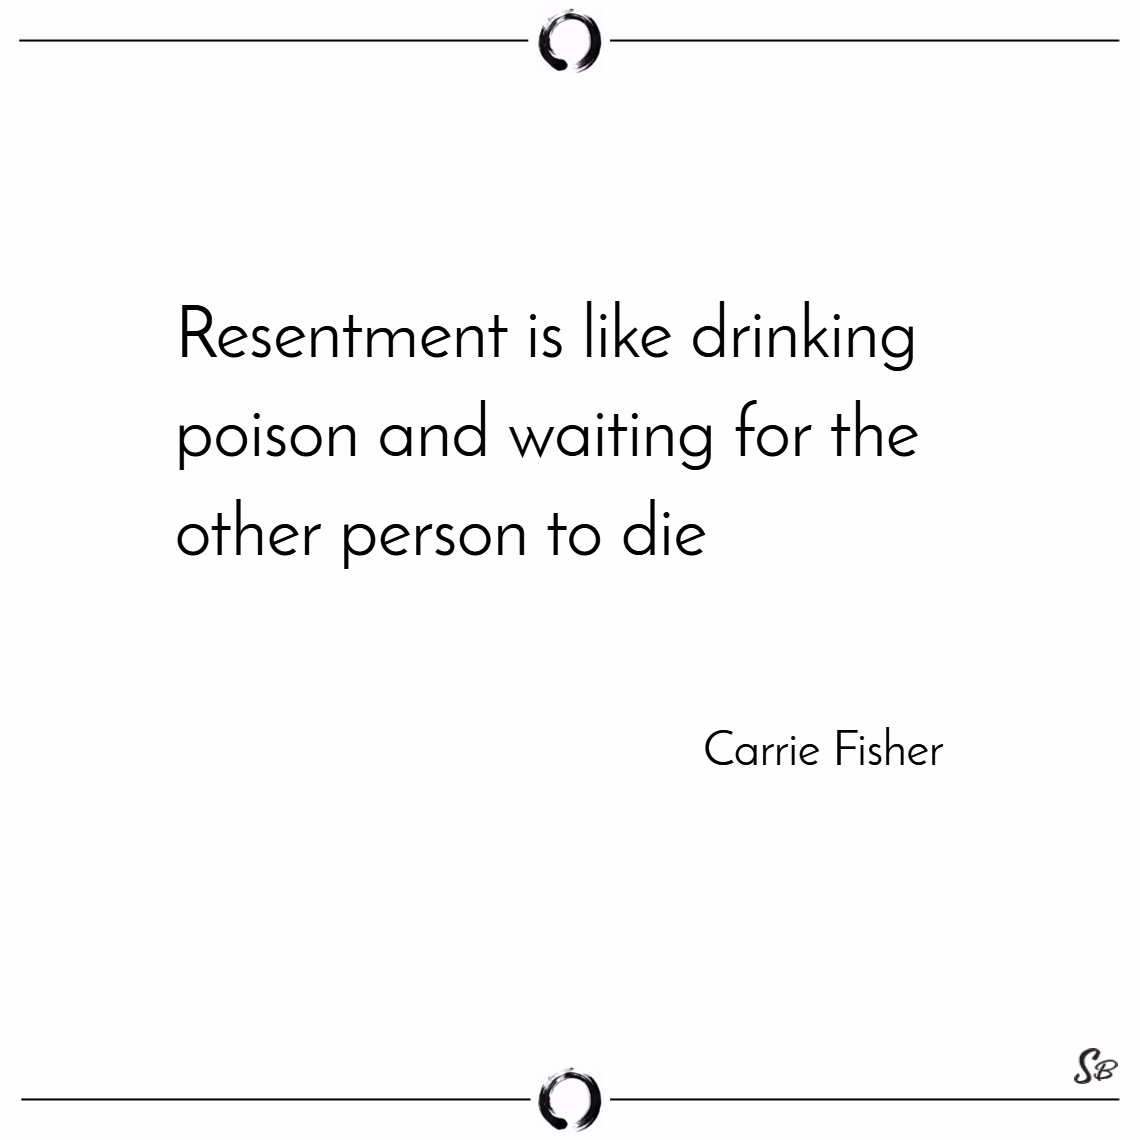 Resentment is like drinking poison and waiting for the other person to die. – carrie fisher